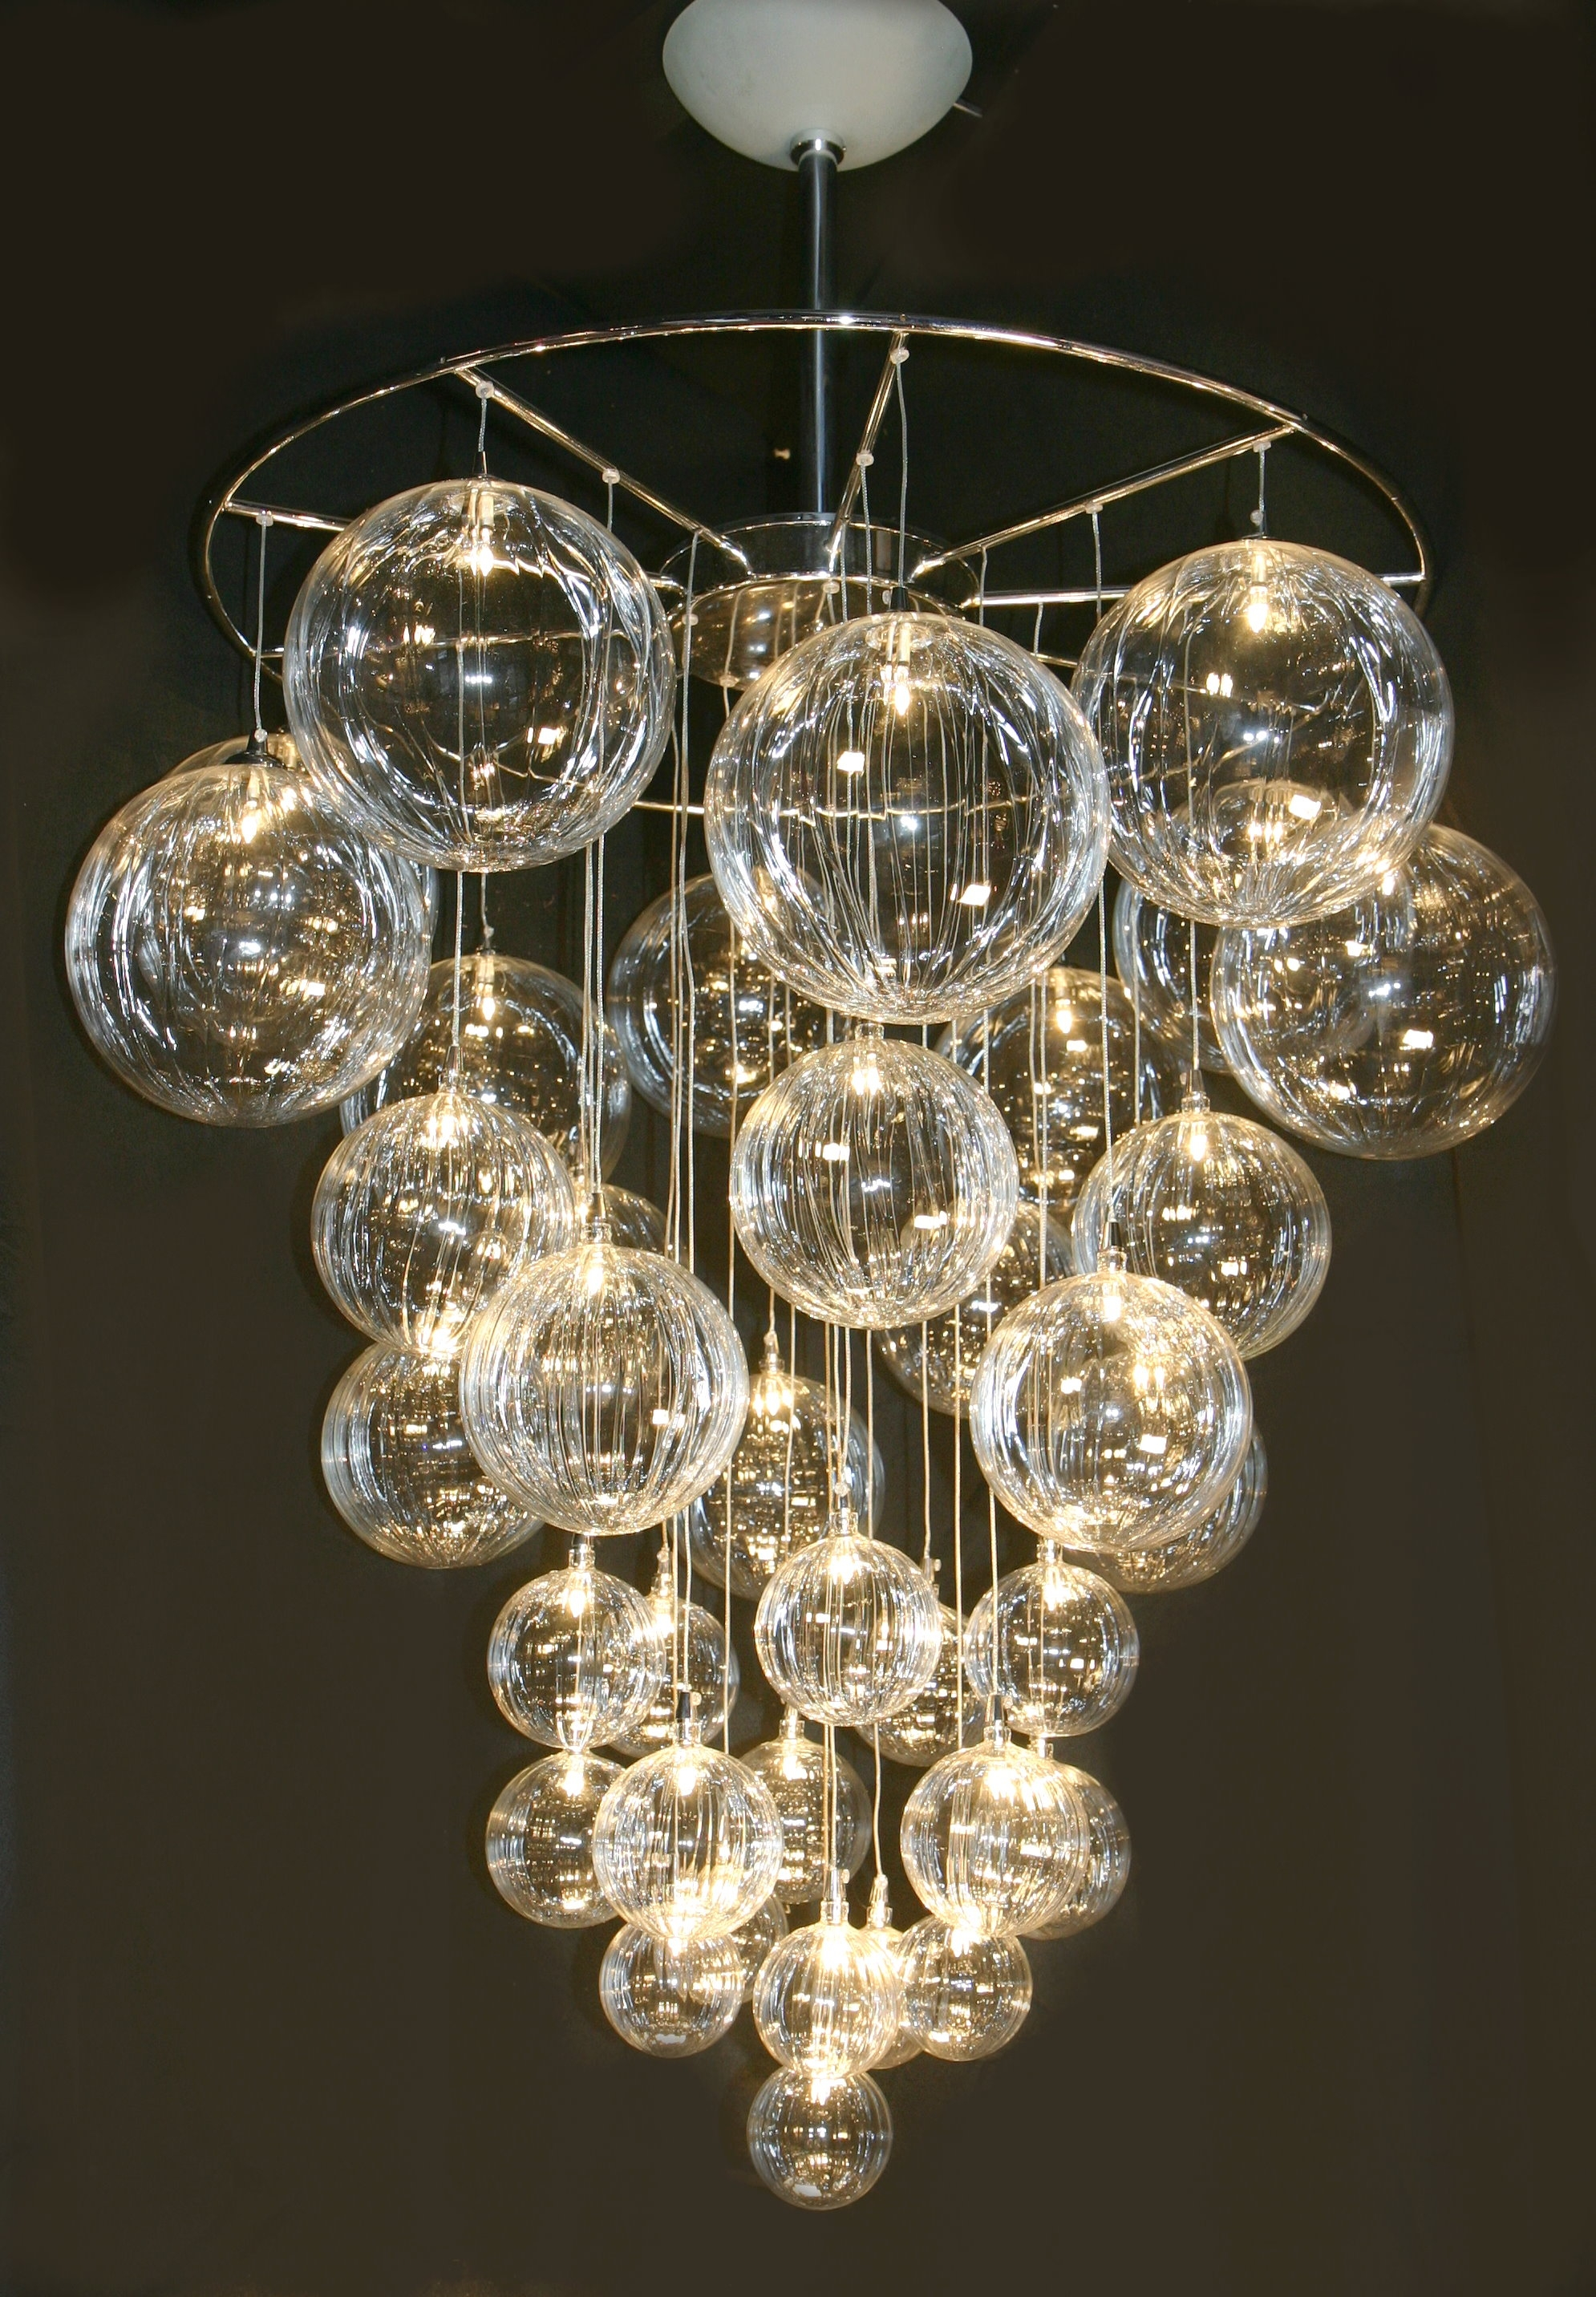 53 Modern Chandelier Lighting Chromecrystalmetal Bubble Shade Pertaining To Chandelier Lights (Image 1 of 15)